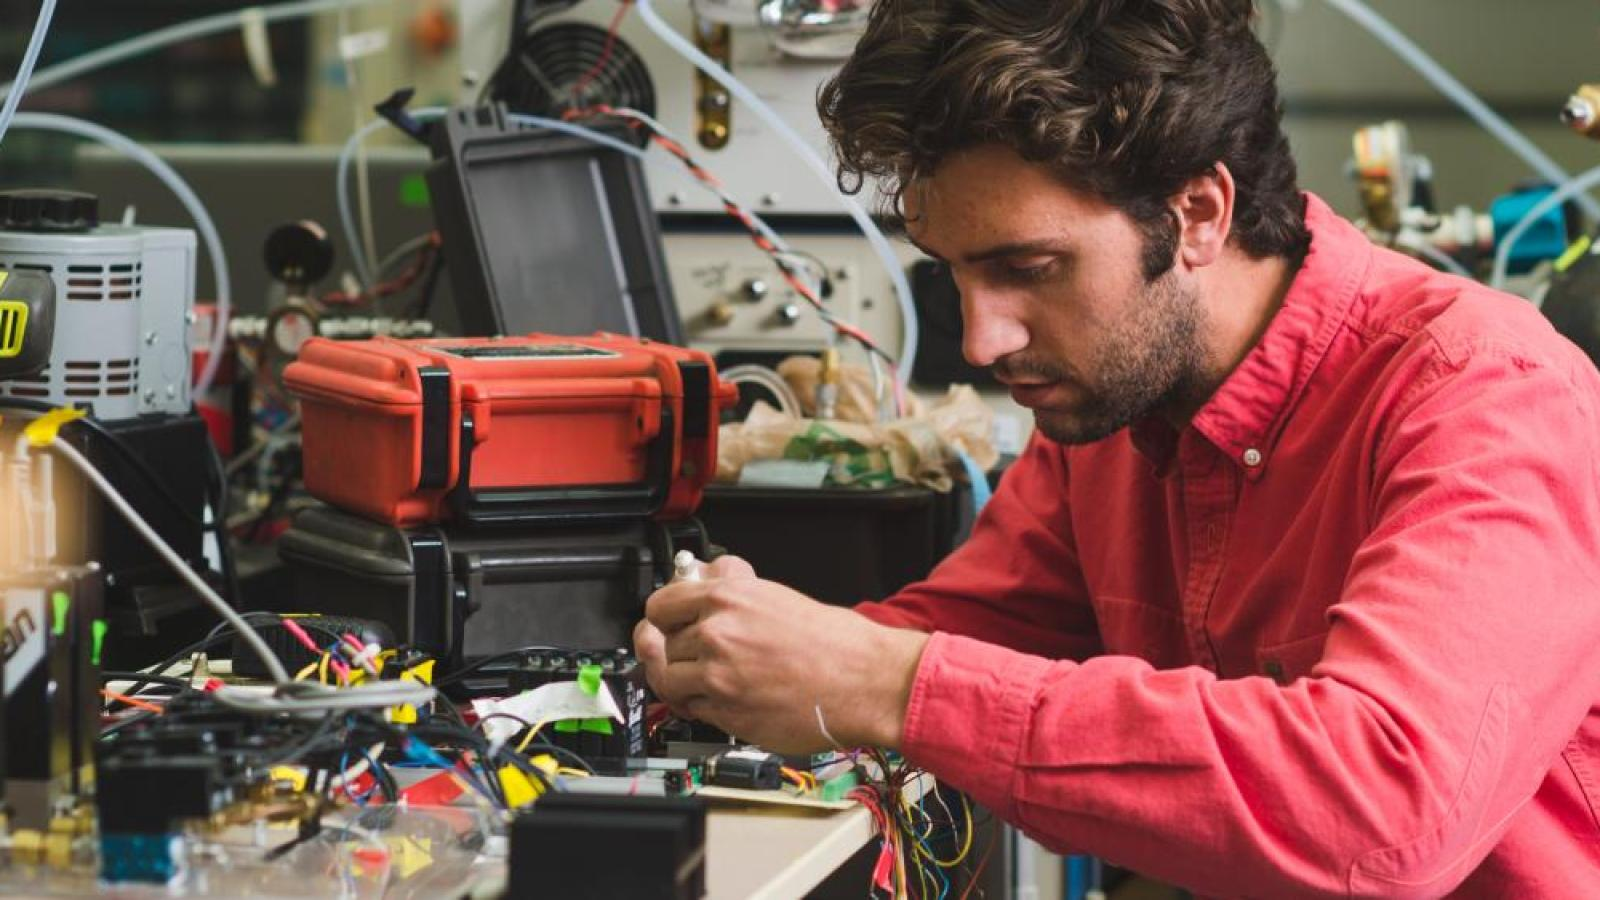 A male engineering student works on a project.